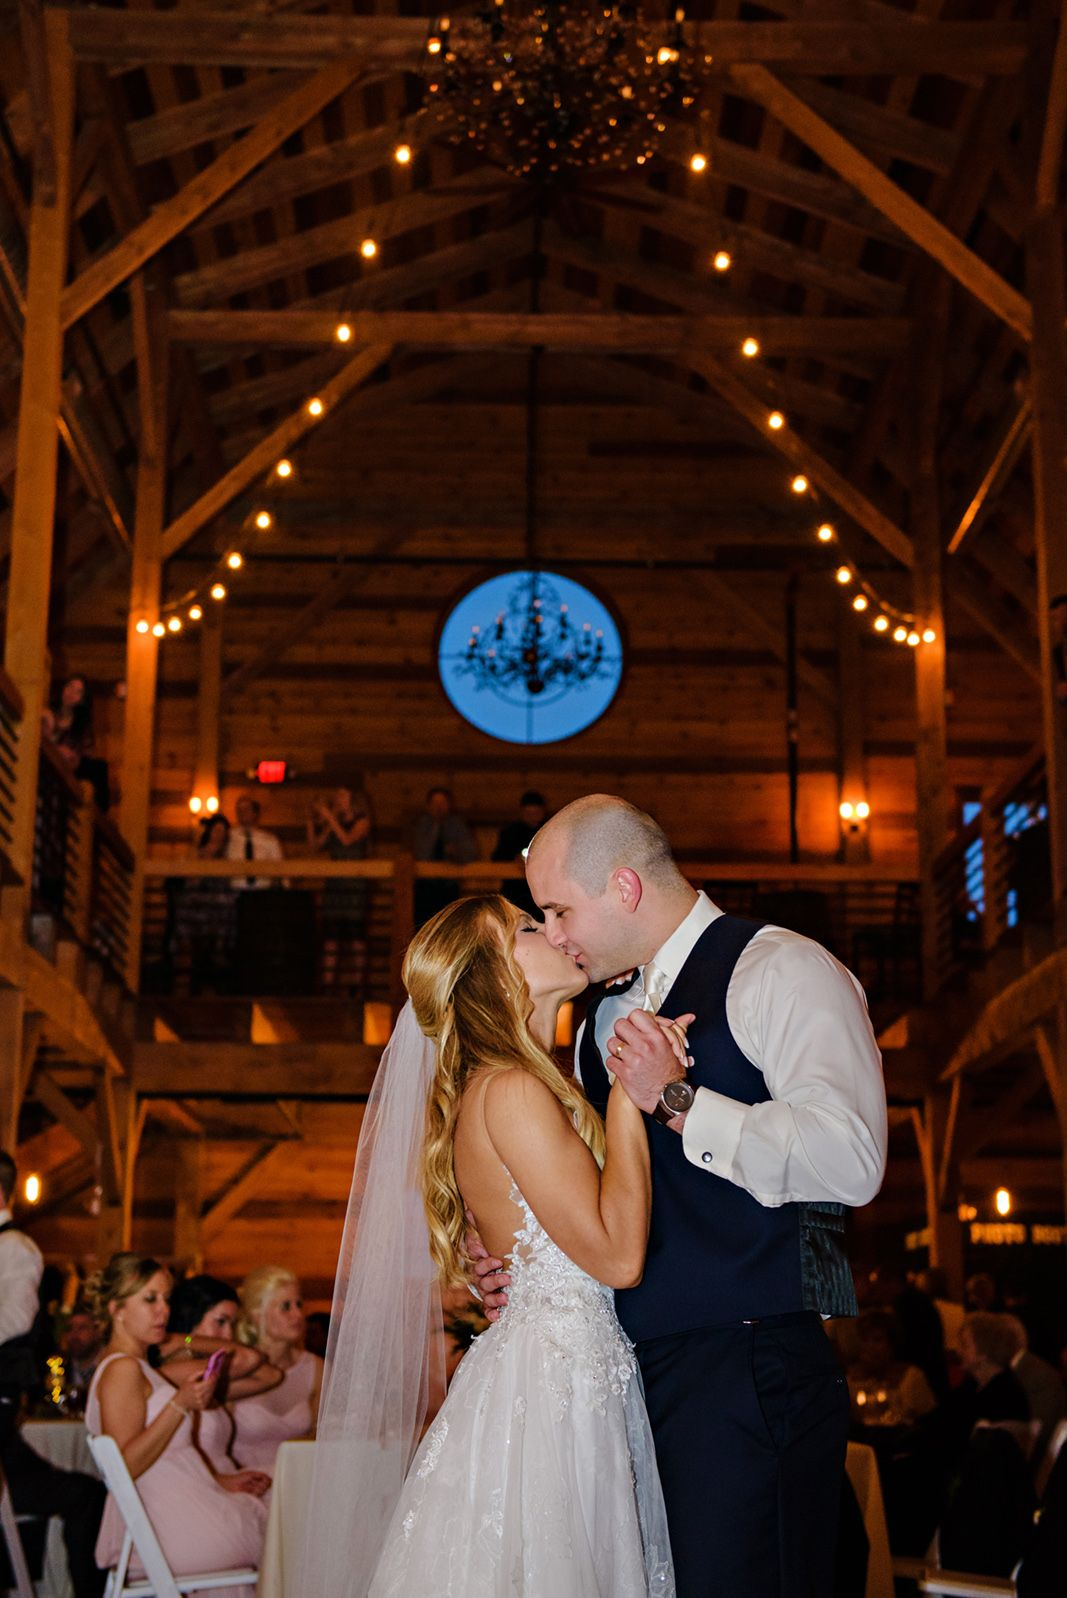 Wedding Reception at Mapleside Farms in Ohio